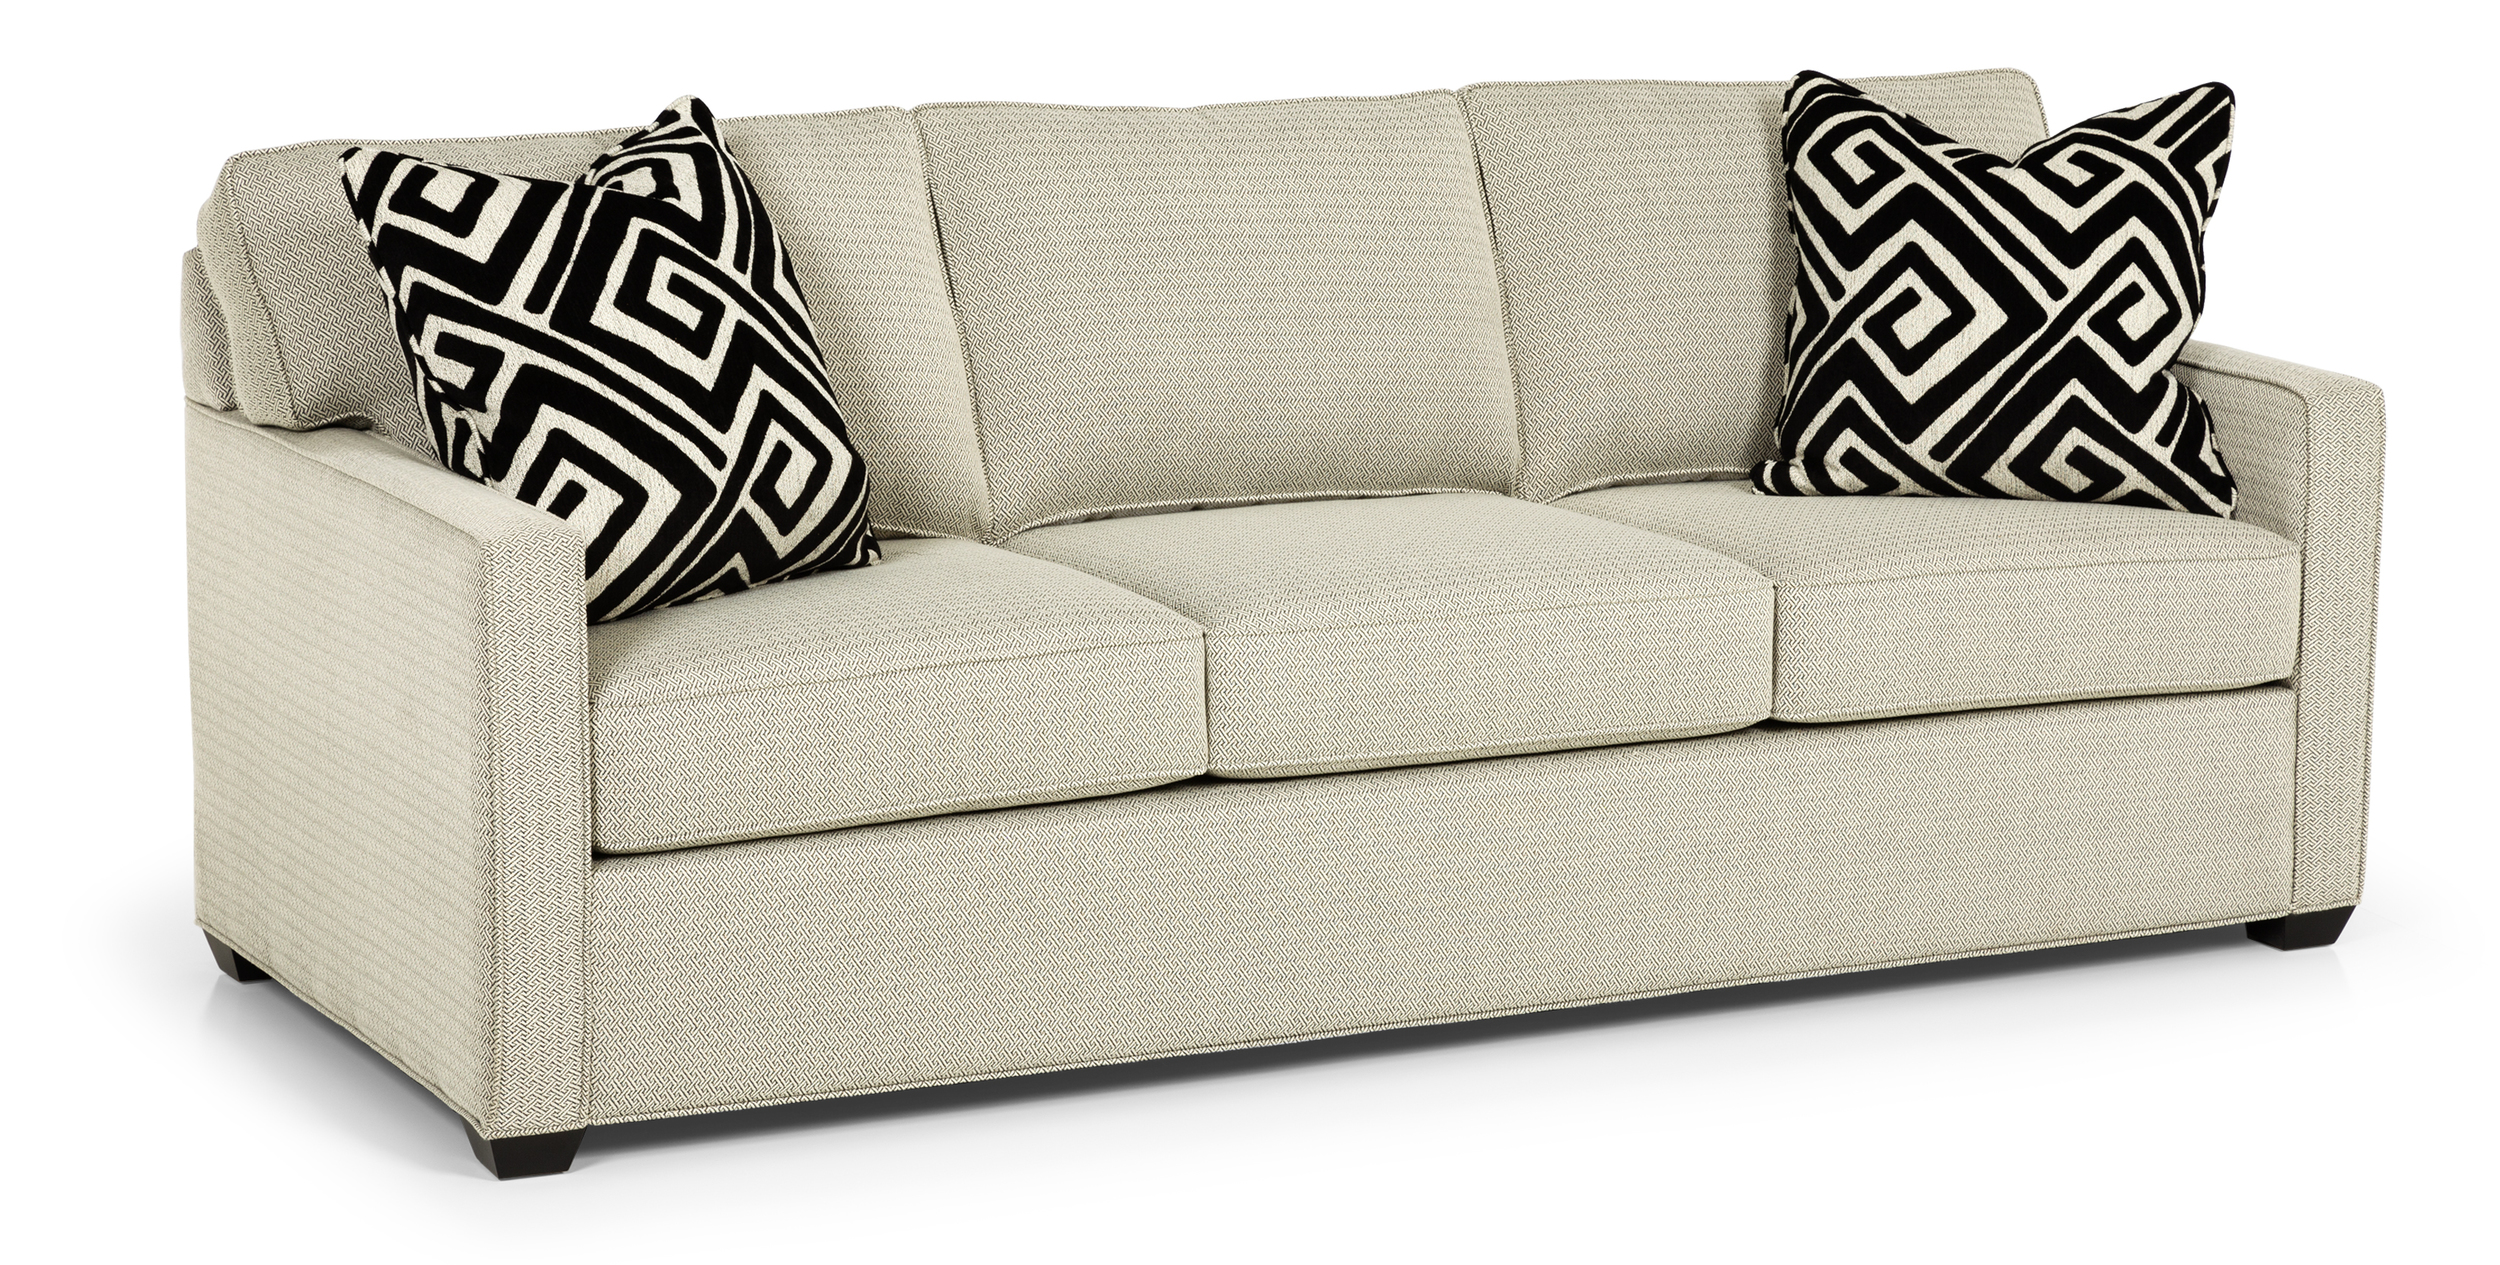 Living Room Furniture Hawaii Sofas & Sectionals